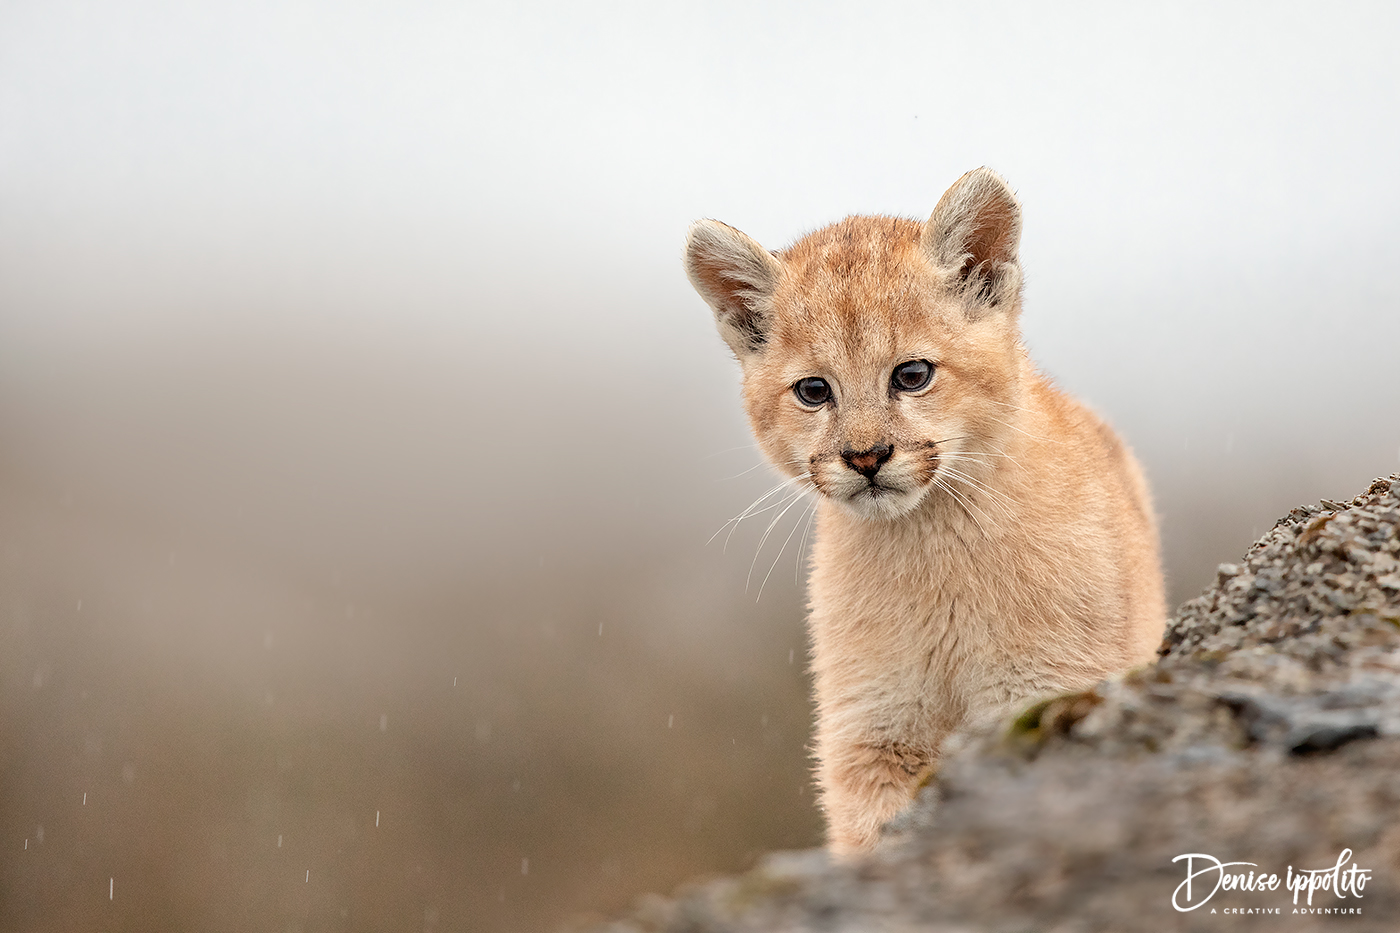 Approximately 7 week old Puma cub, Patagonia 2019